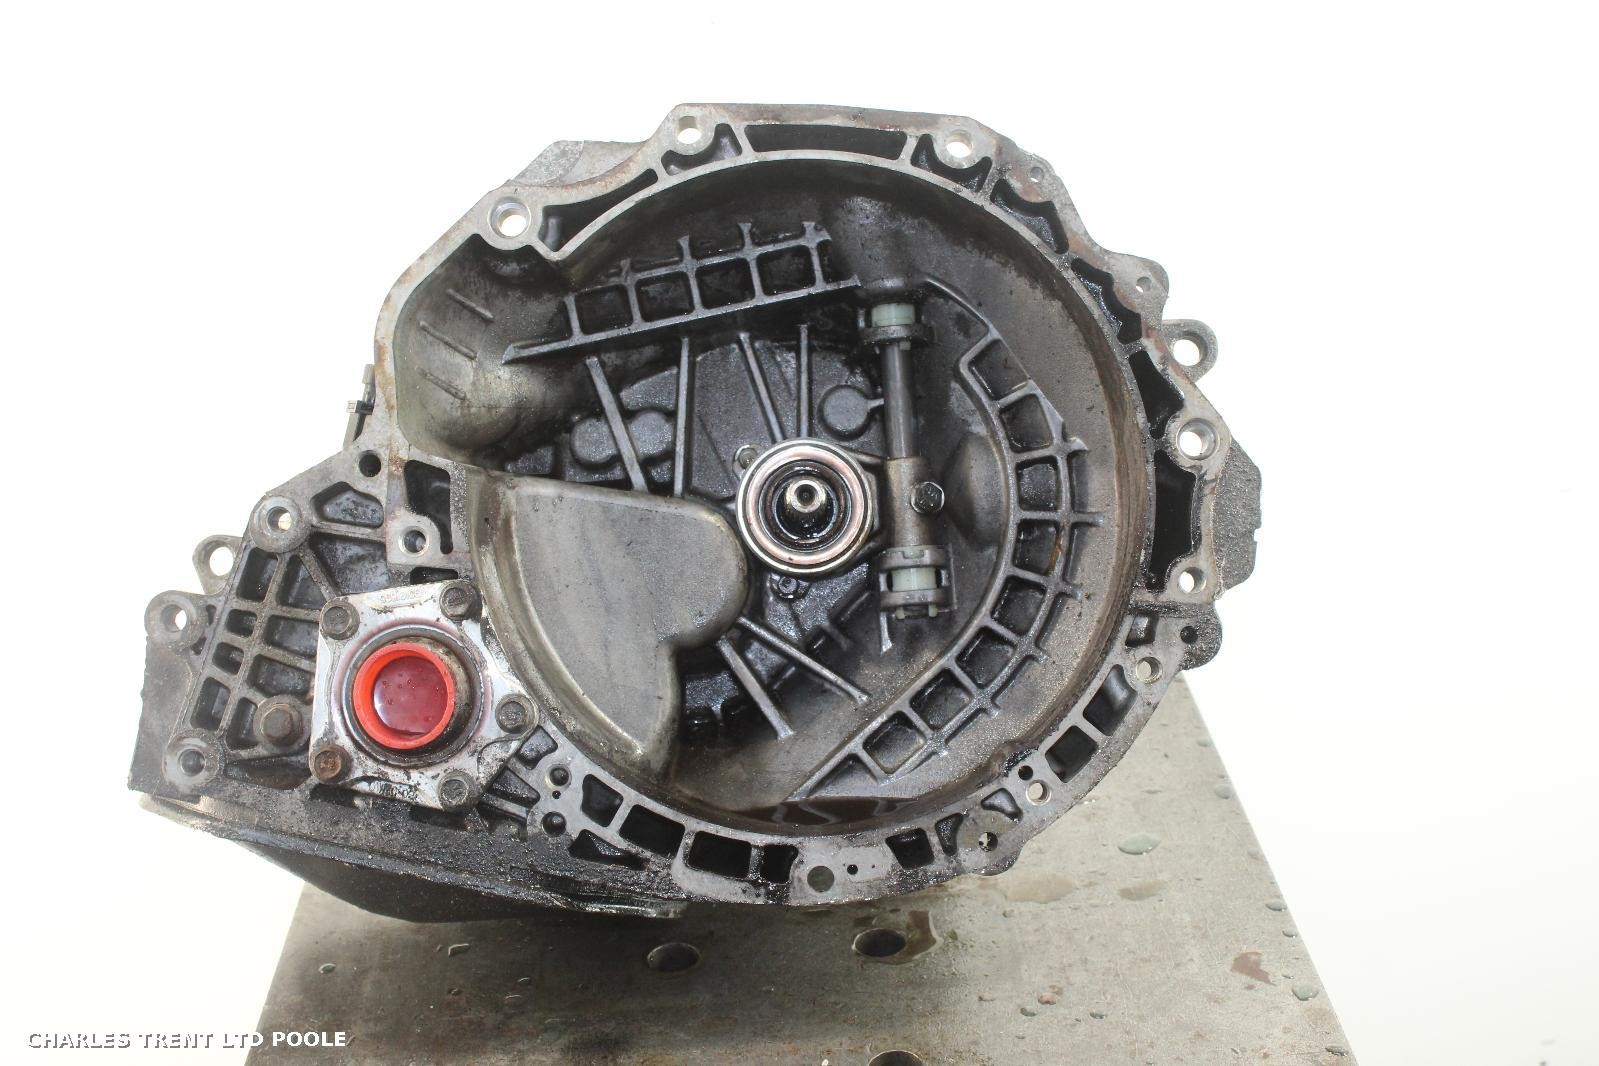 2009 - CHEVROLET - AVEO - GEARBOXES / TRANSMISSIONS